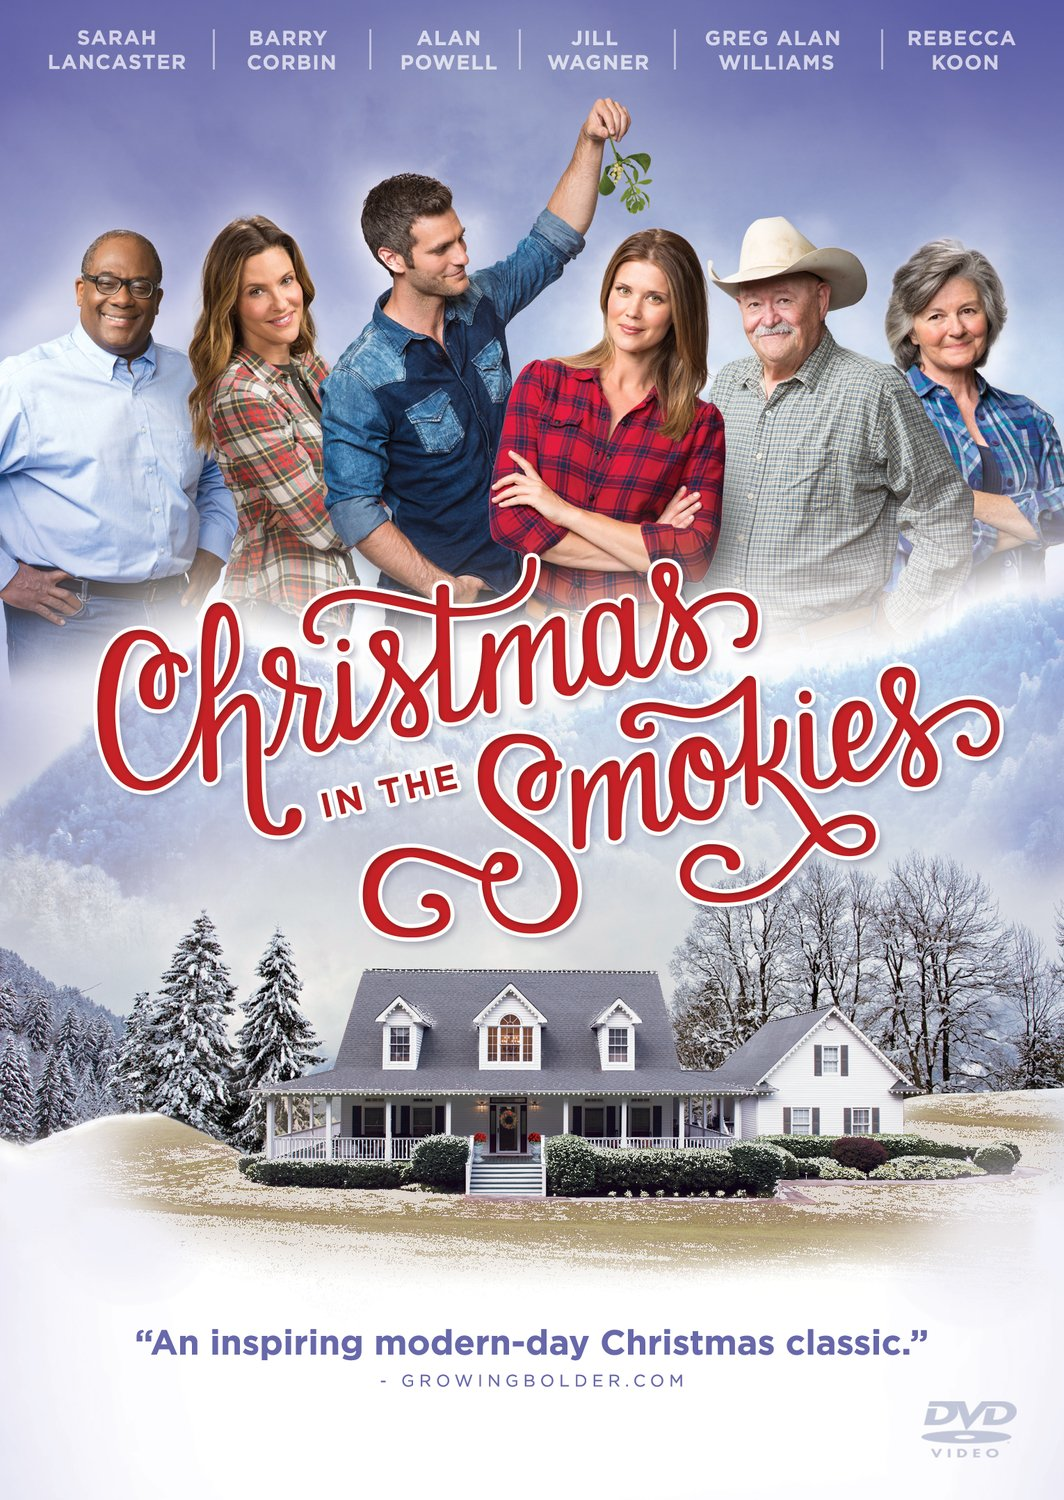 Amazon.com: Christmas in the Smokies: Various: Movies & TV